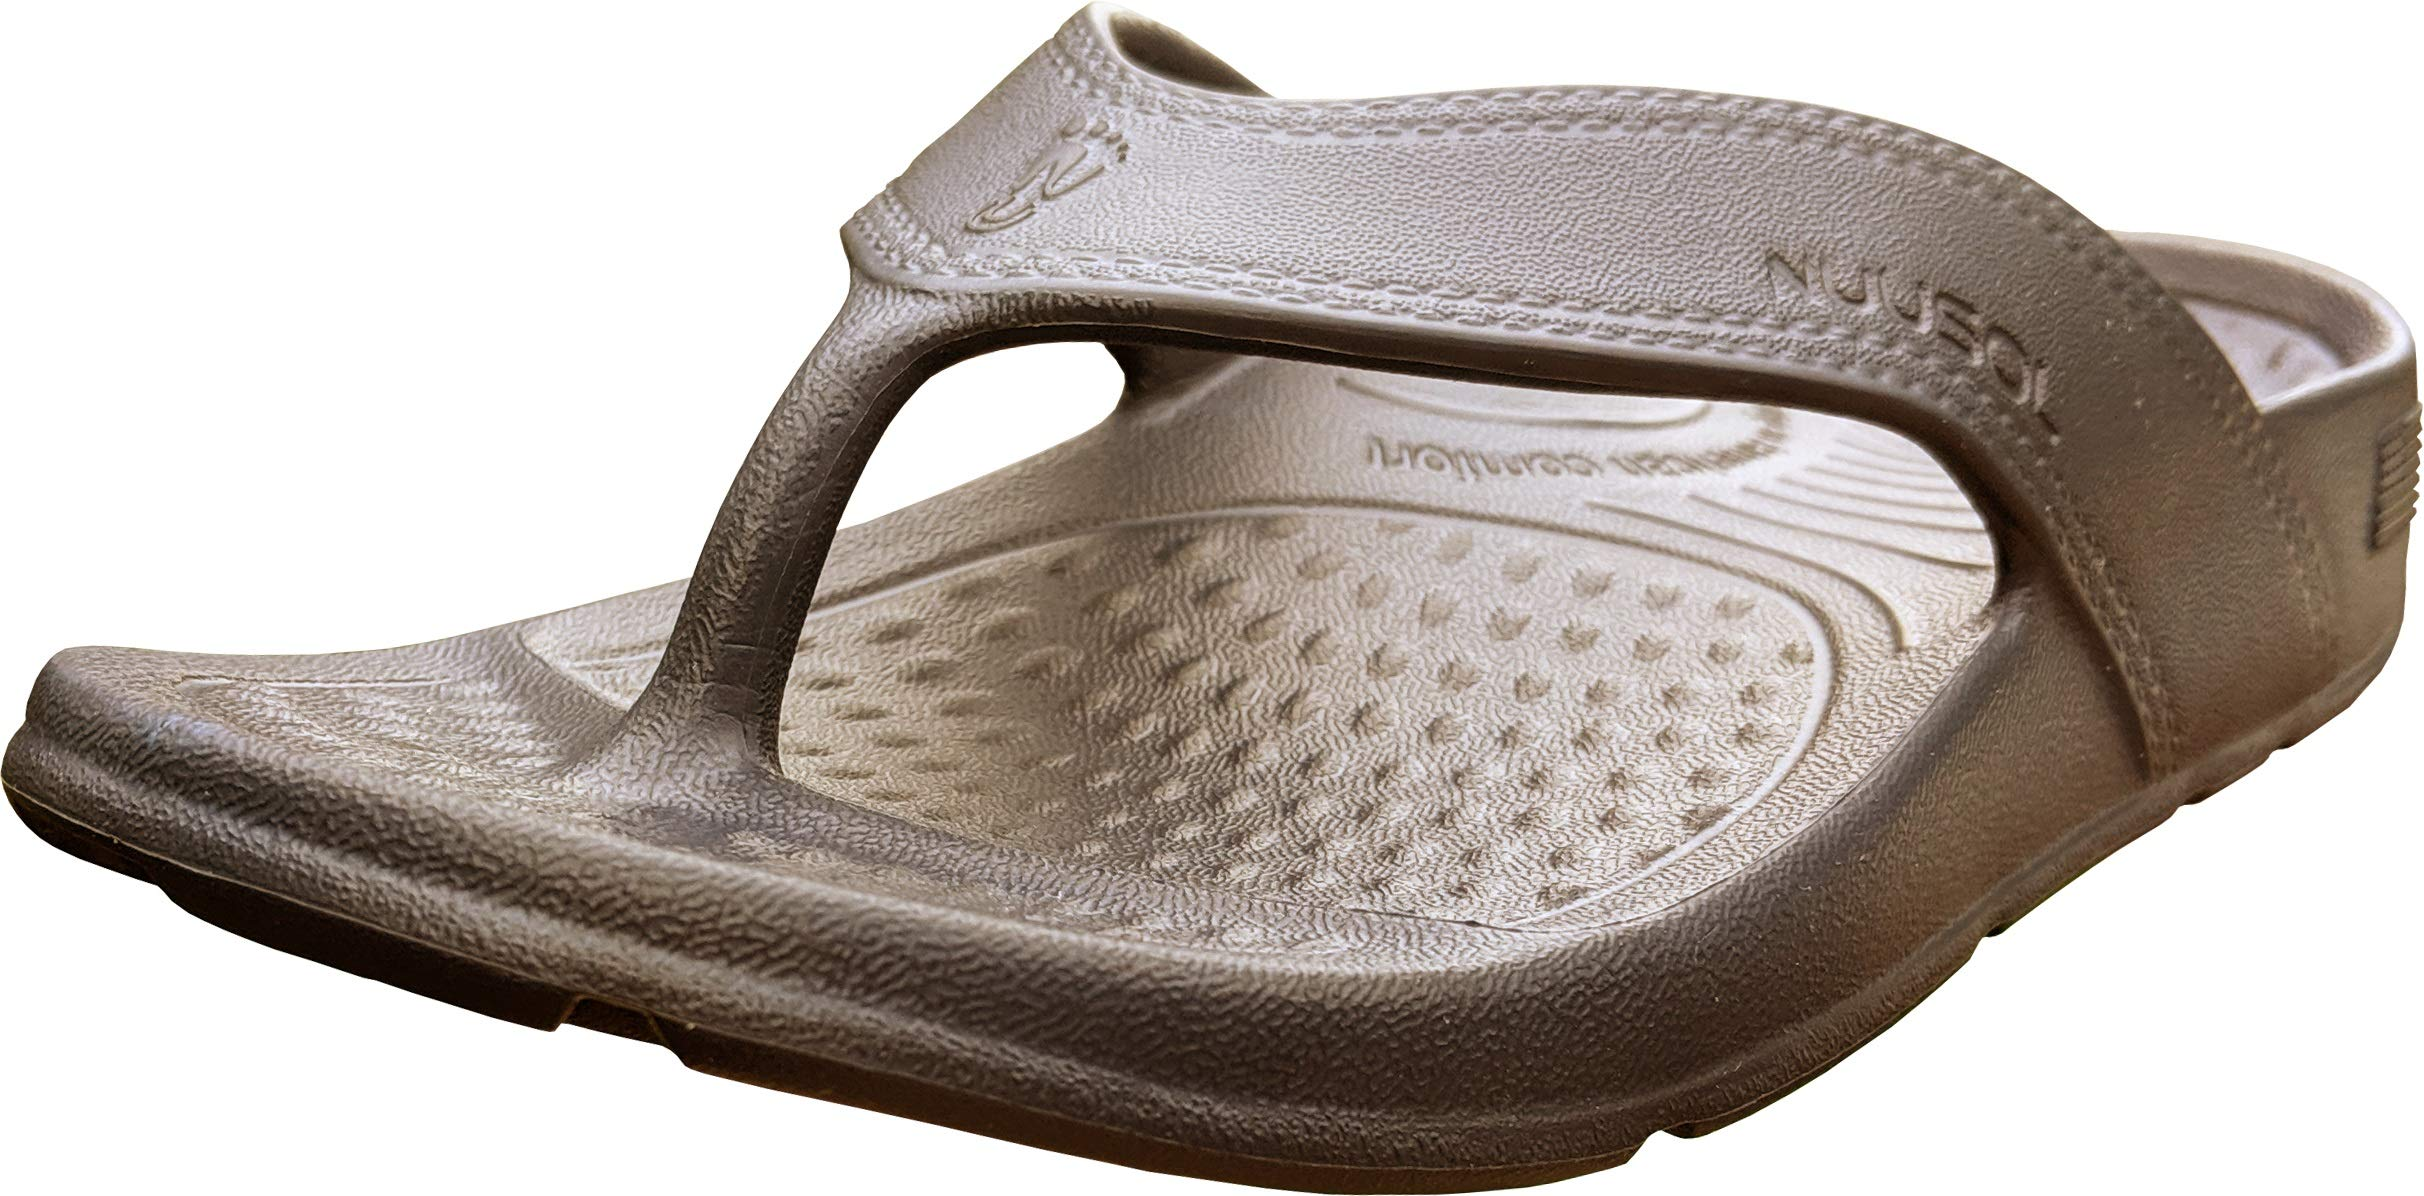 NUUSOL UnisexCascadeFlip Flops; Non-Slip Hiking/Plantar Fasciitis Footwear; Soft Cushion, Lightweight, Arch Support & Textured Footbed, Pain Relief for Joint, Neck & Back Injuries